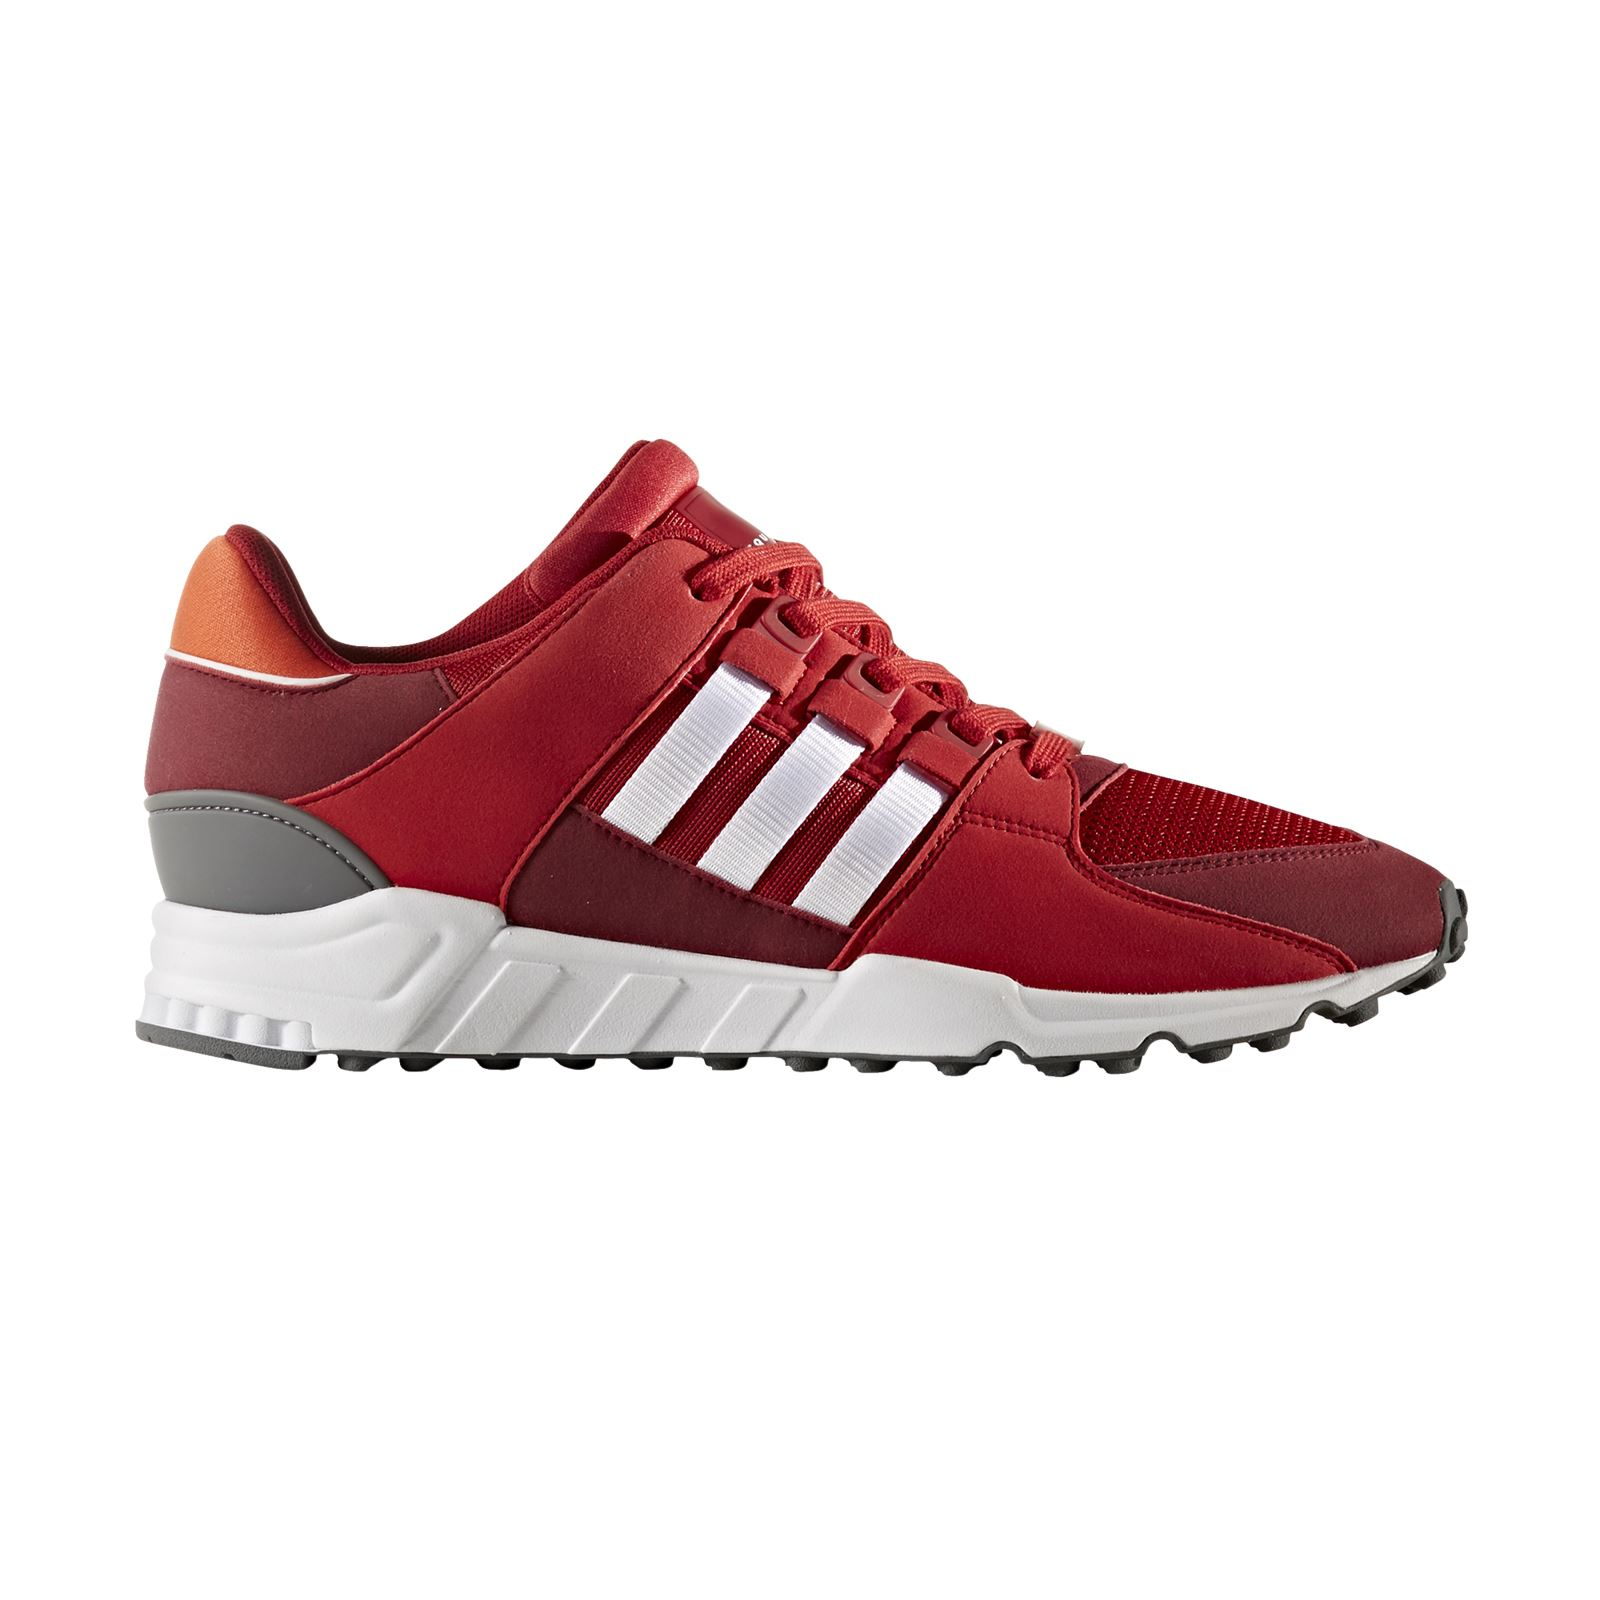 adidas originals eqt support baskets rouge brandalley. Black Bedroom Furniture Sets. Home Design Ideas